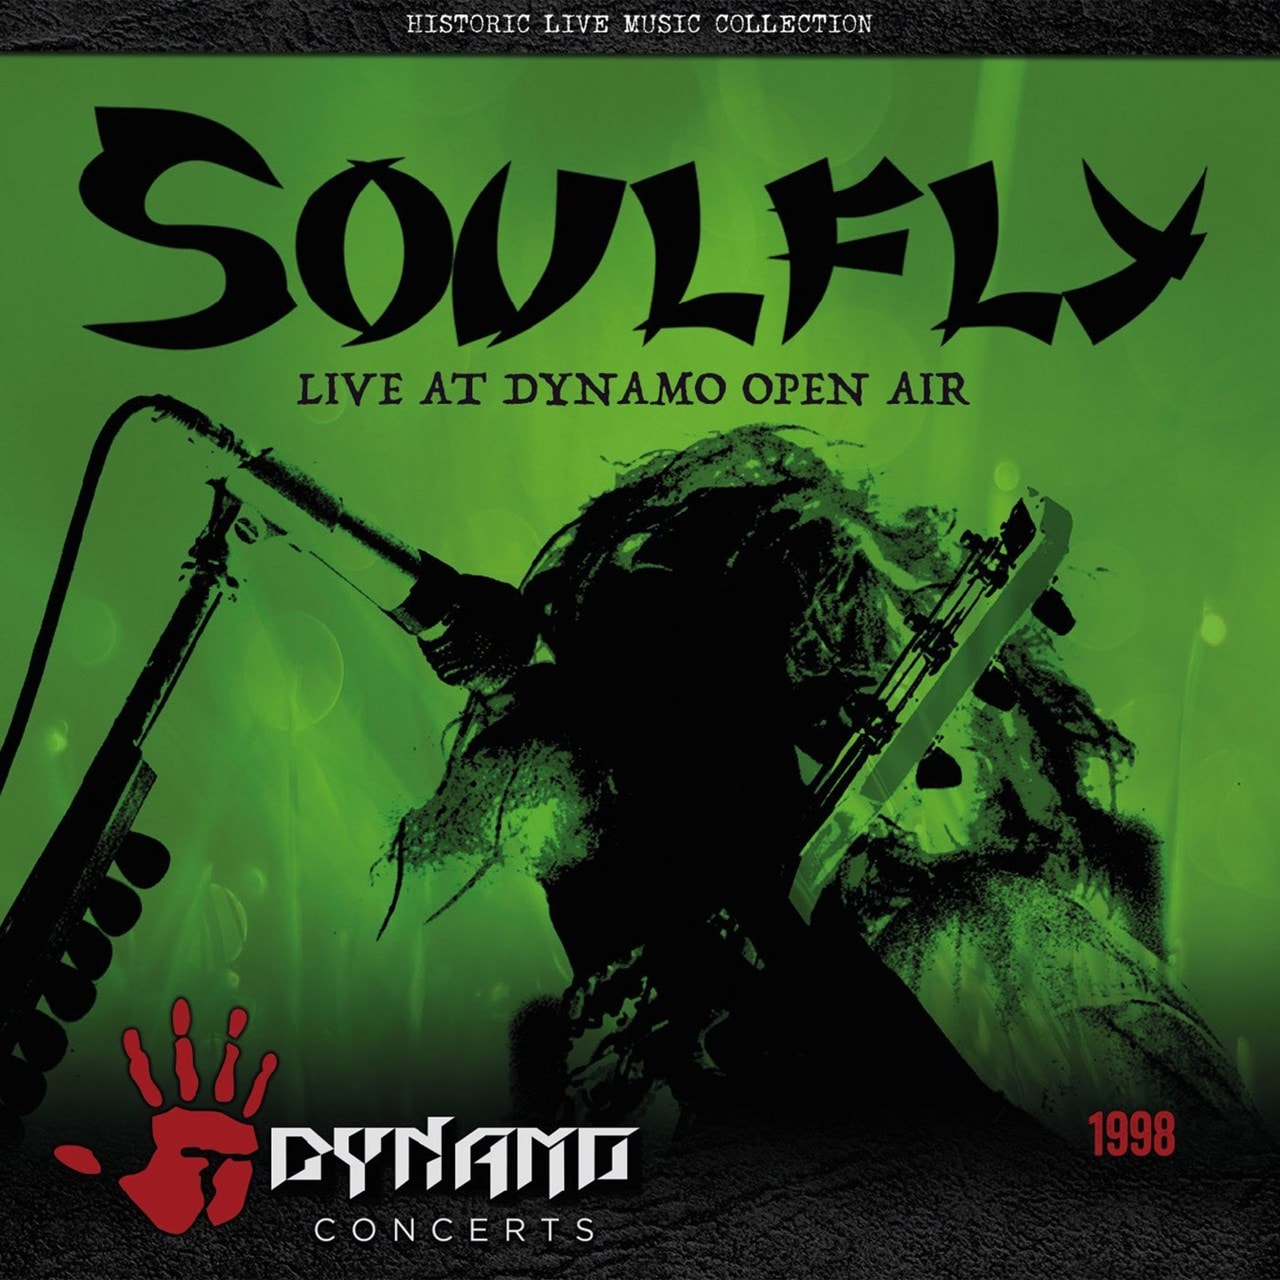 Live at Dynamo Open Air 1998 - 1